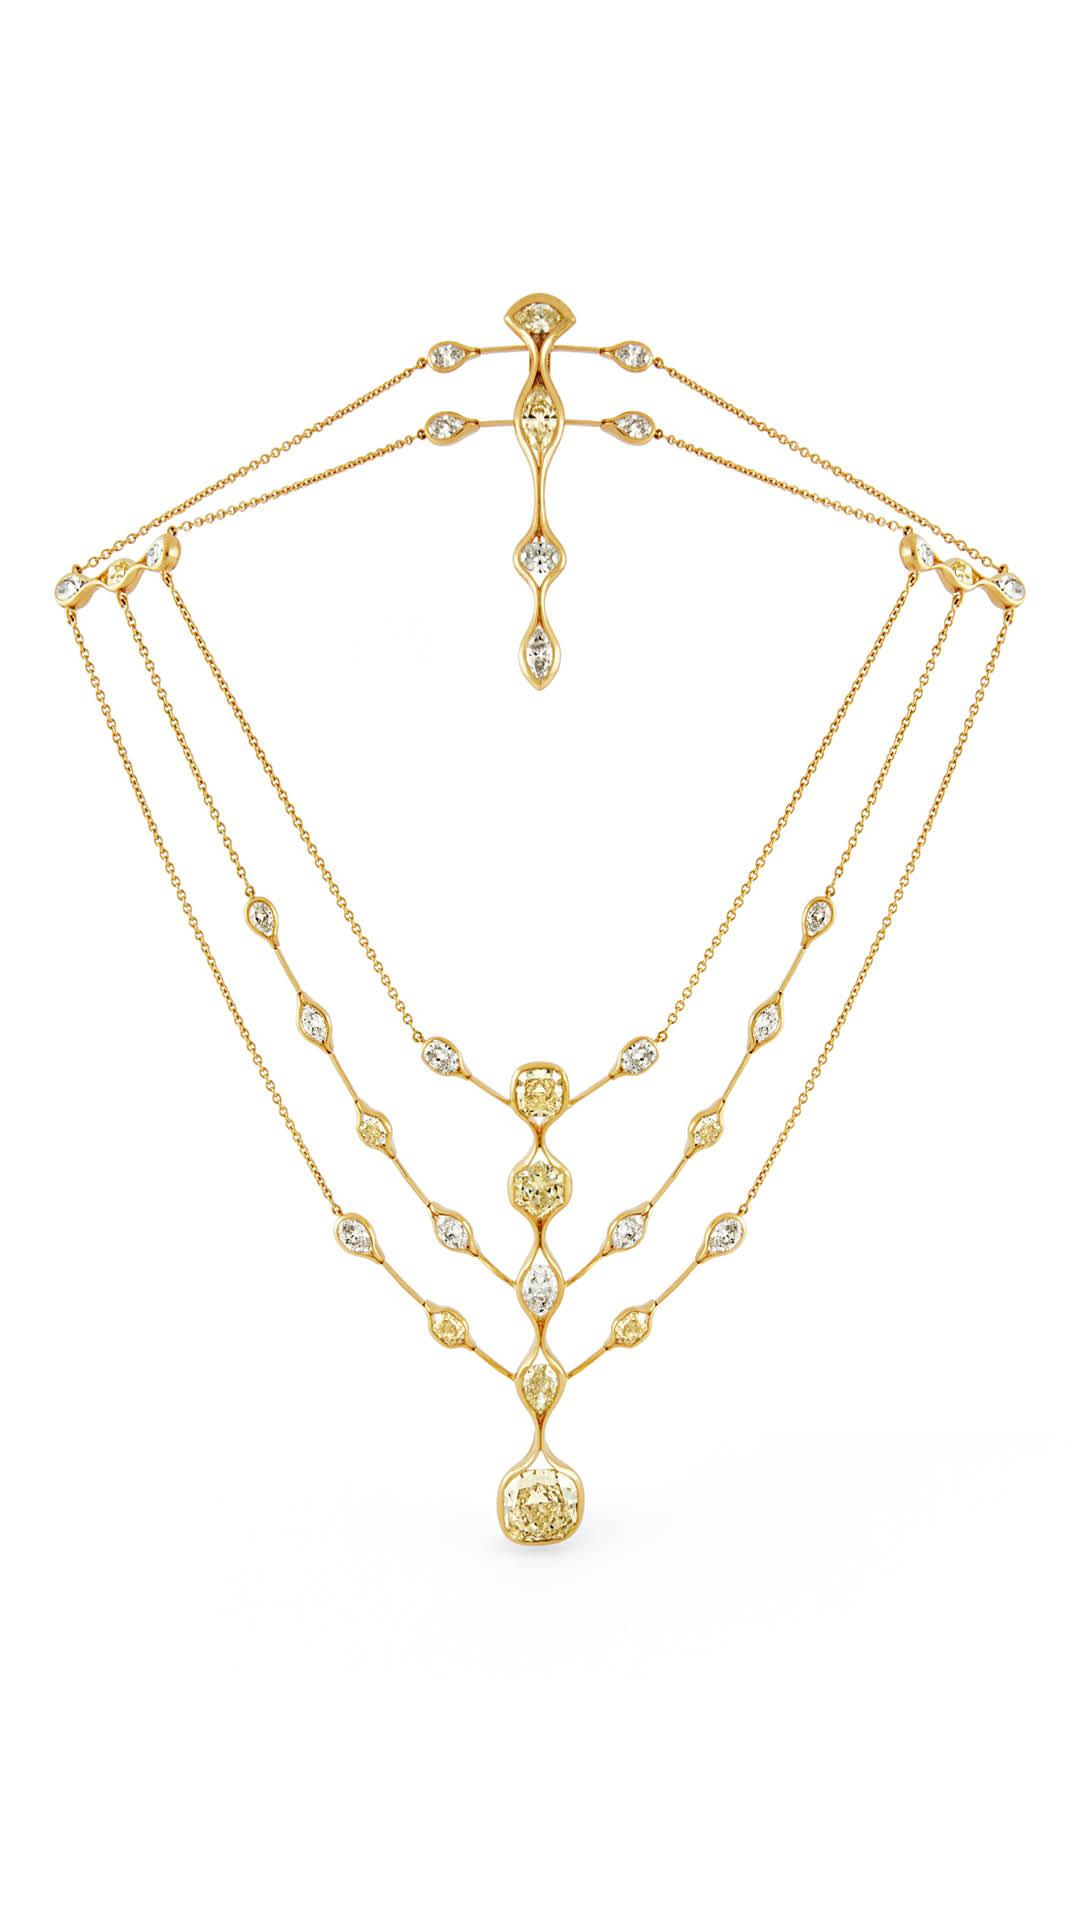 Repossi Ode diamond and gold necklace